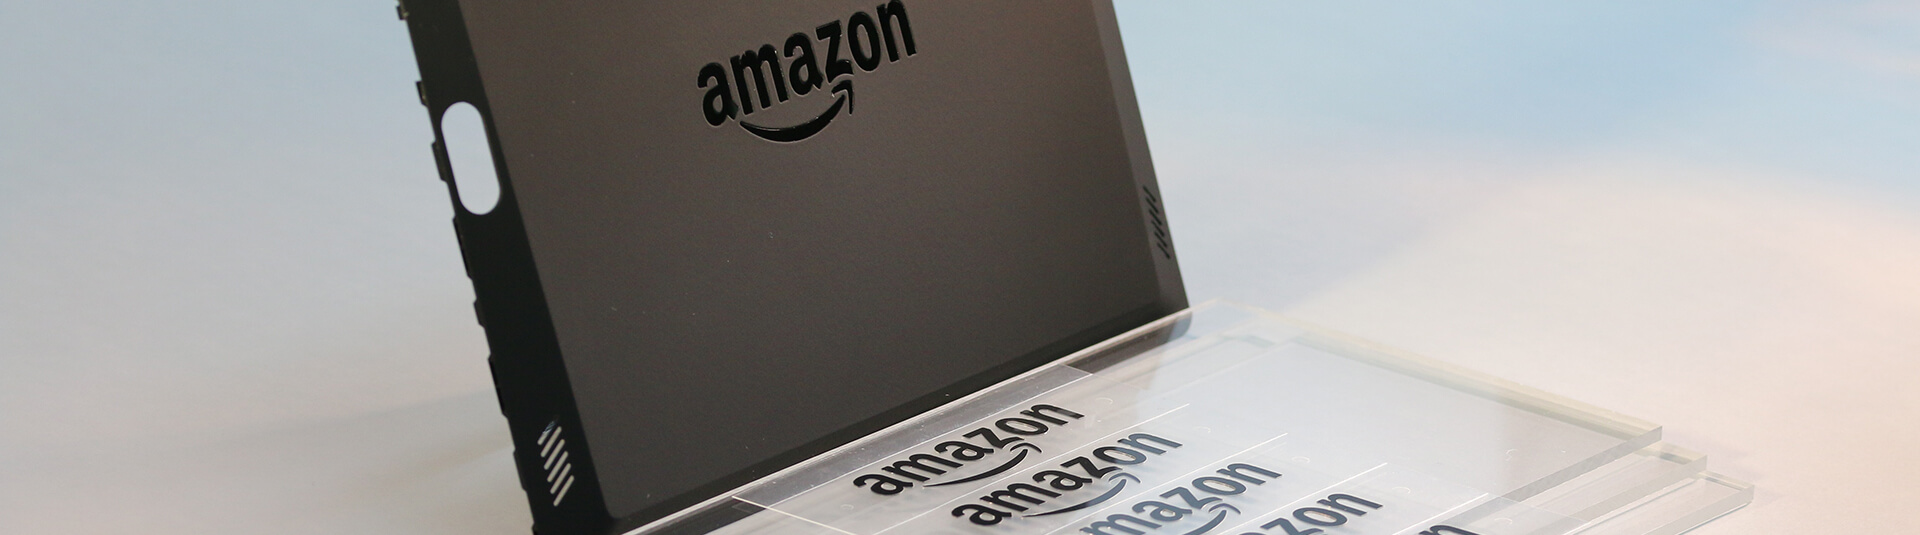 Amazon Chassis & Amazon Brand Logo